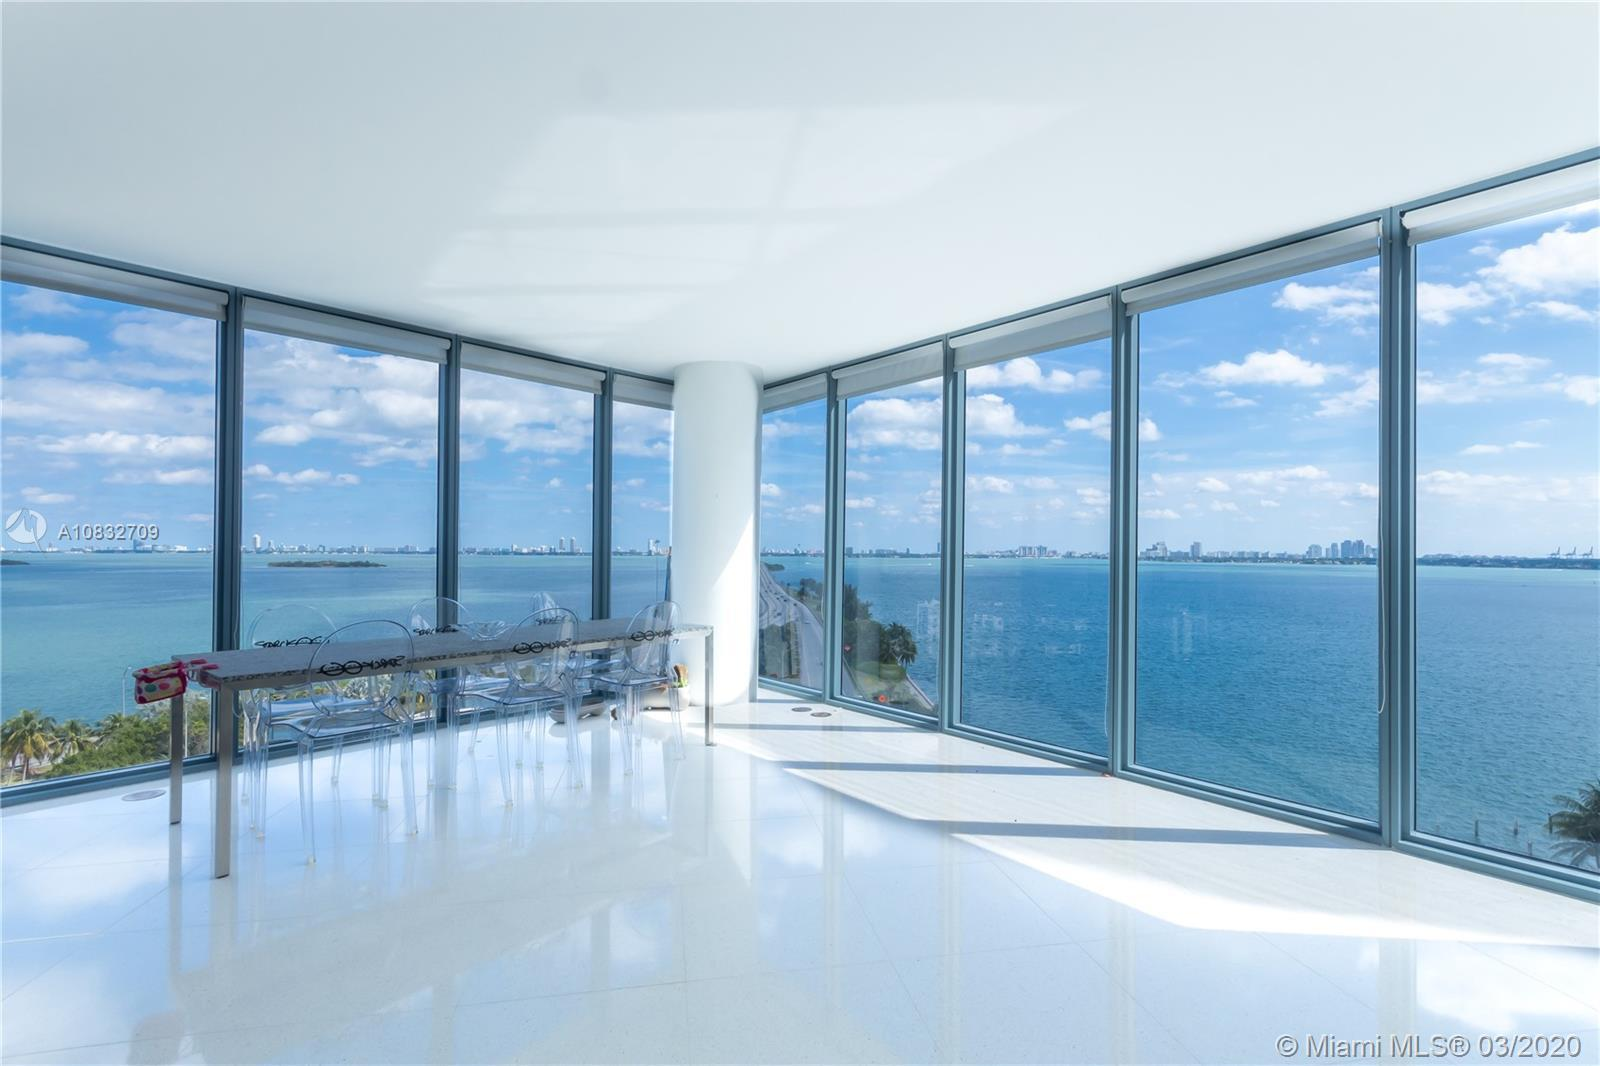 MOTIVATED SELLER | LOWEST PRICED UNIT IN THE 12 LINE: 180 degrees of pure glass staring at the Bisca